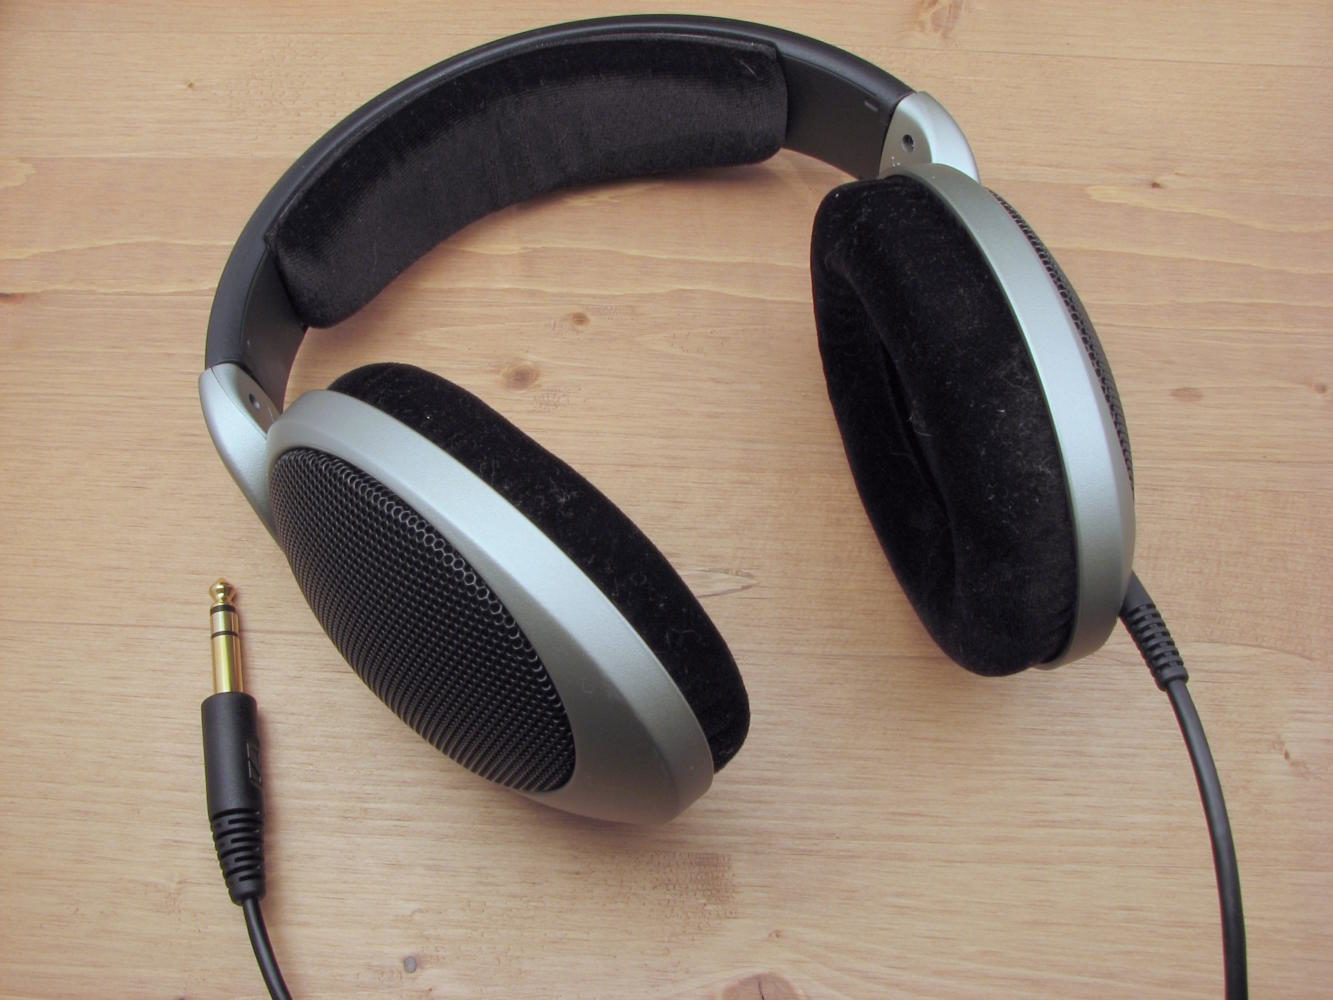 Headphones: What to look for when purchasing